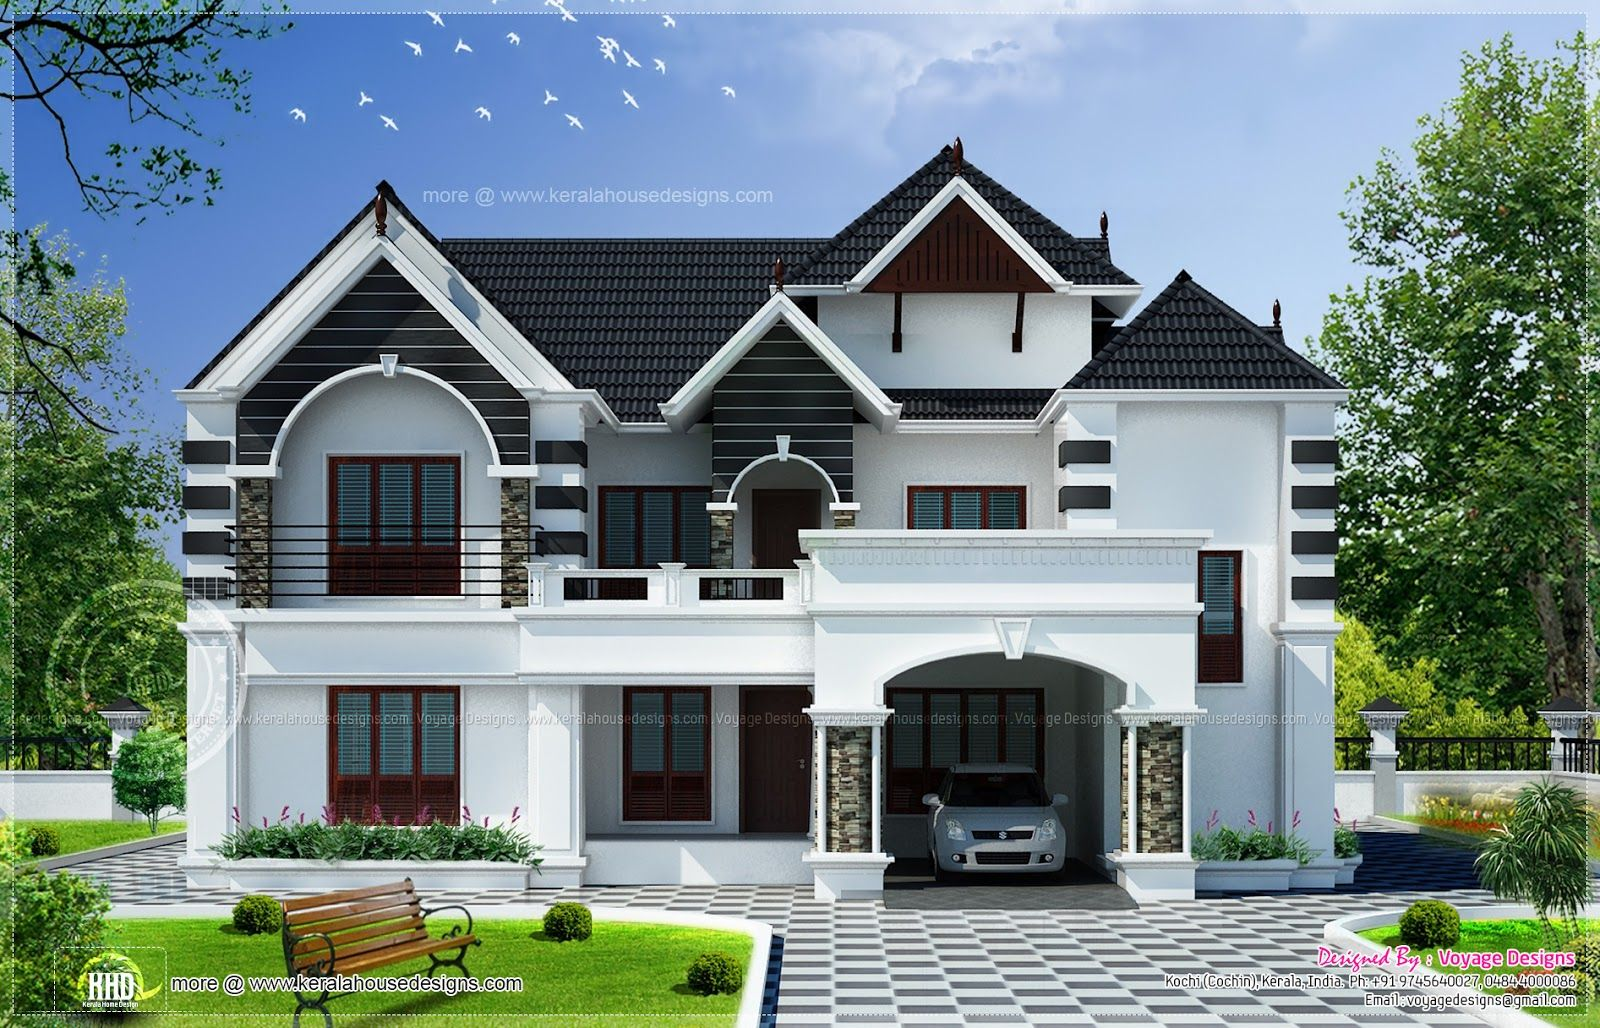 4 Bedroom Colonial Style House Colonial House Plans Colonial House House Roof Design